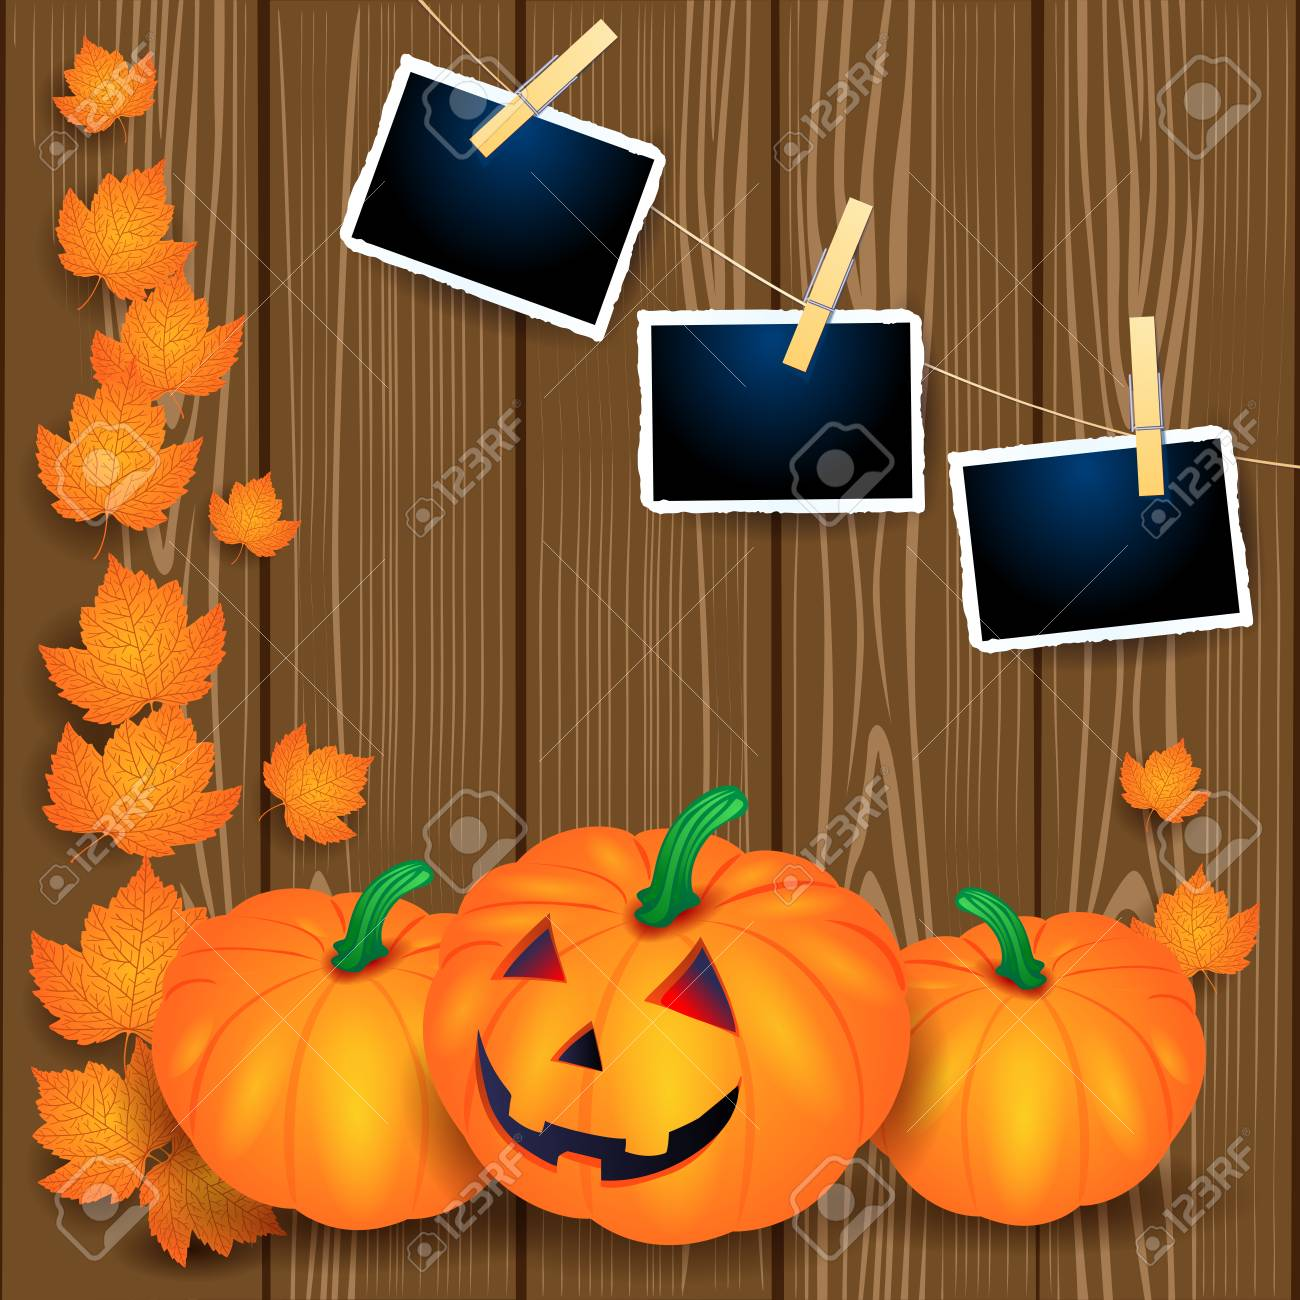 Halloween illustration with pumpkins, leaves and photo frames on wooden background. Vector eps10 - 108956177